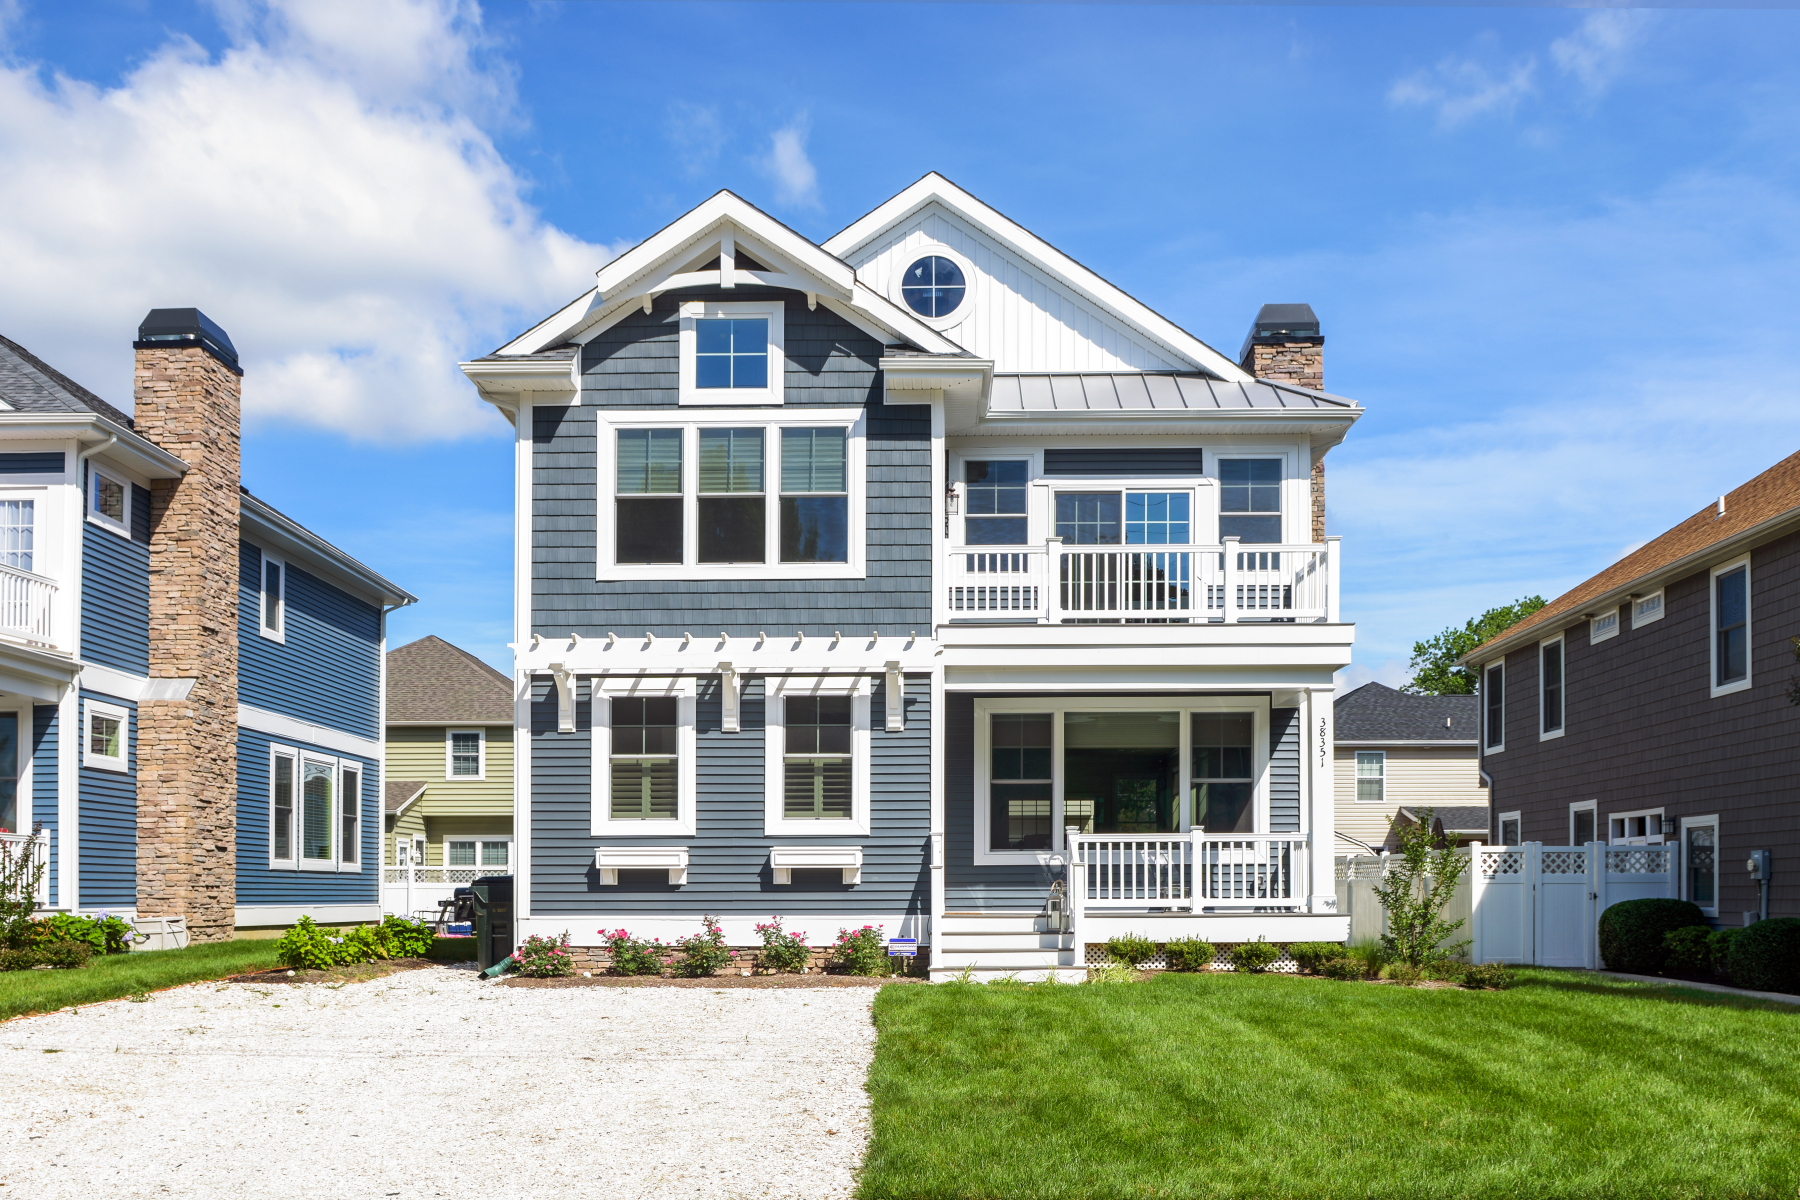 Single Family Home for Sale at 207 Munson , Rehoboth Beach, DE 19971 207 Munson Rehoboth Beach, 19971 United States